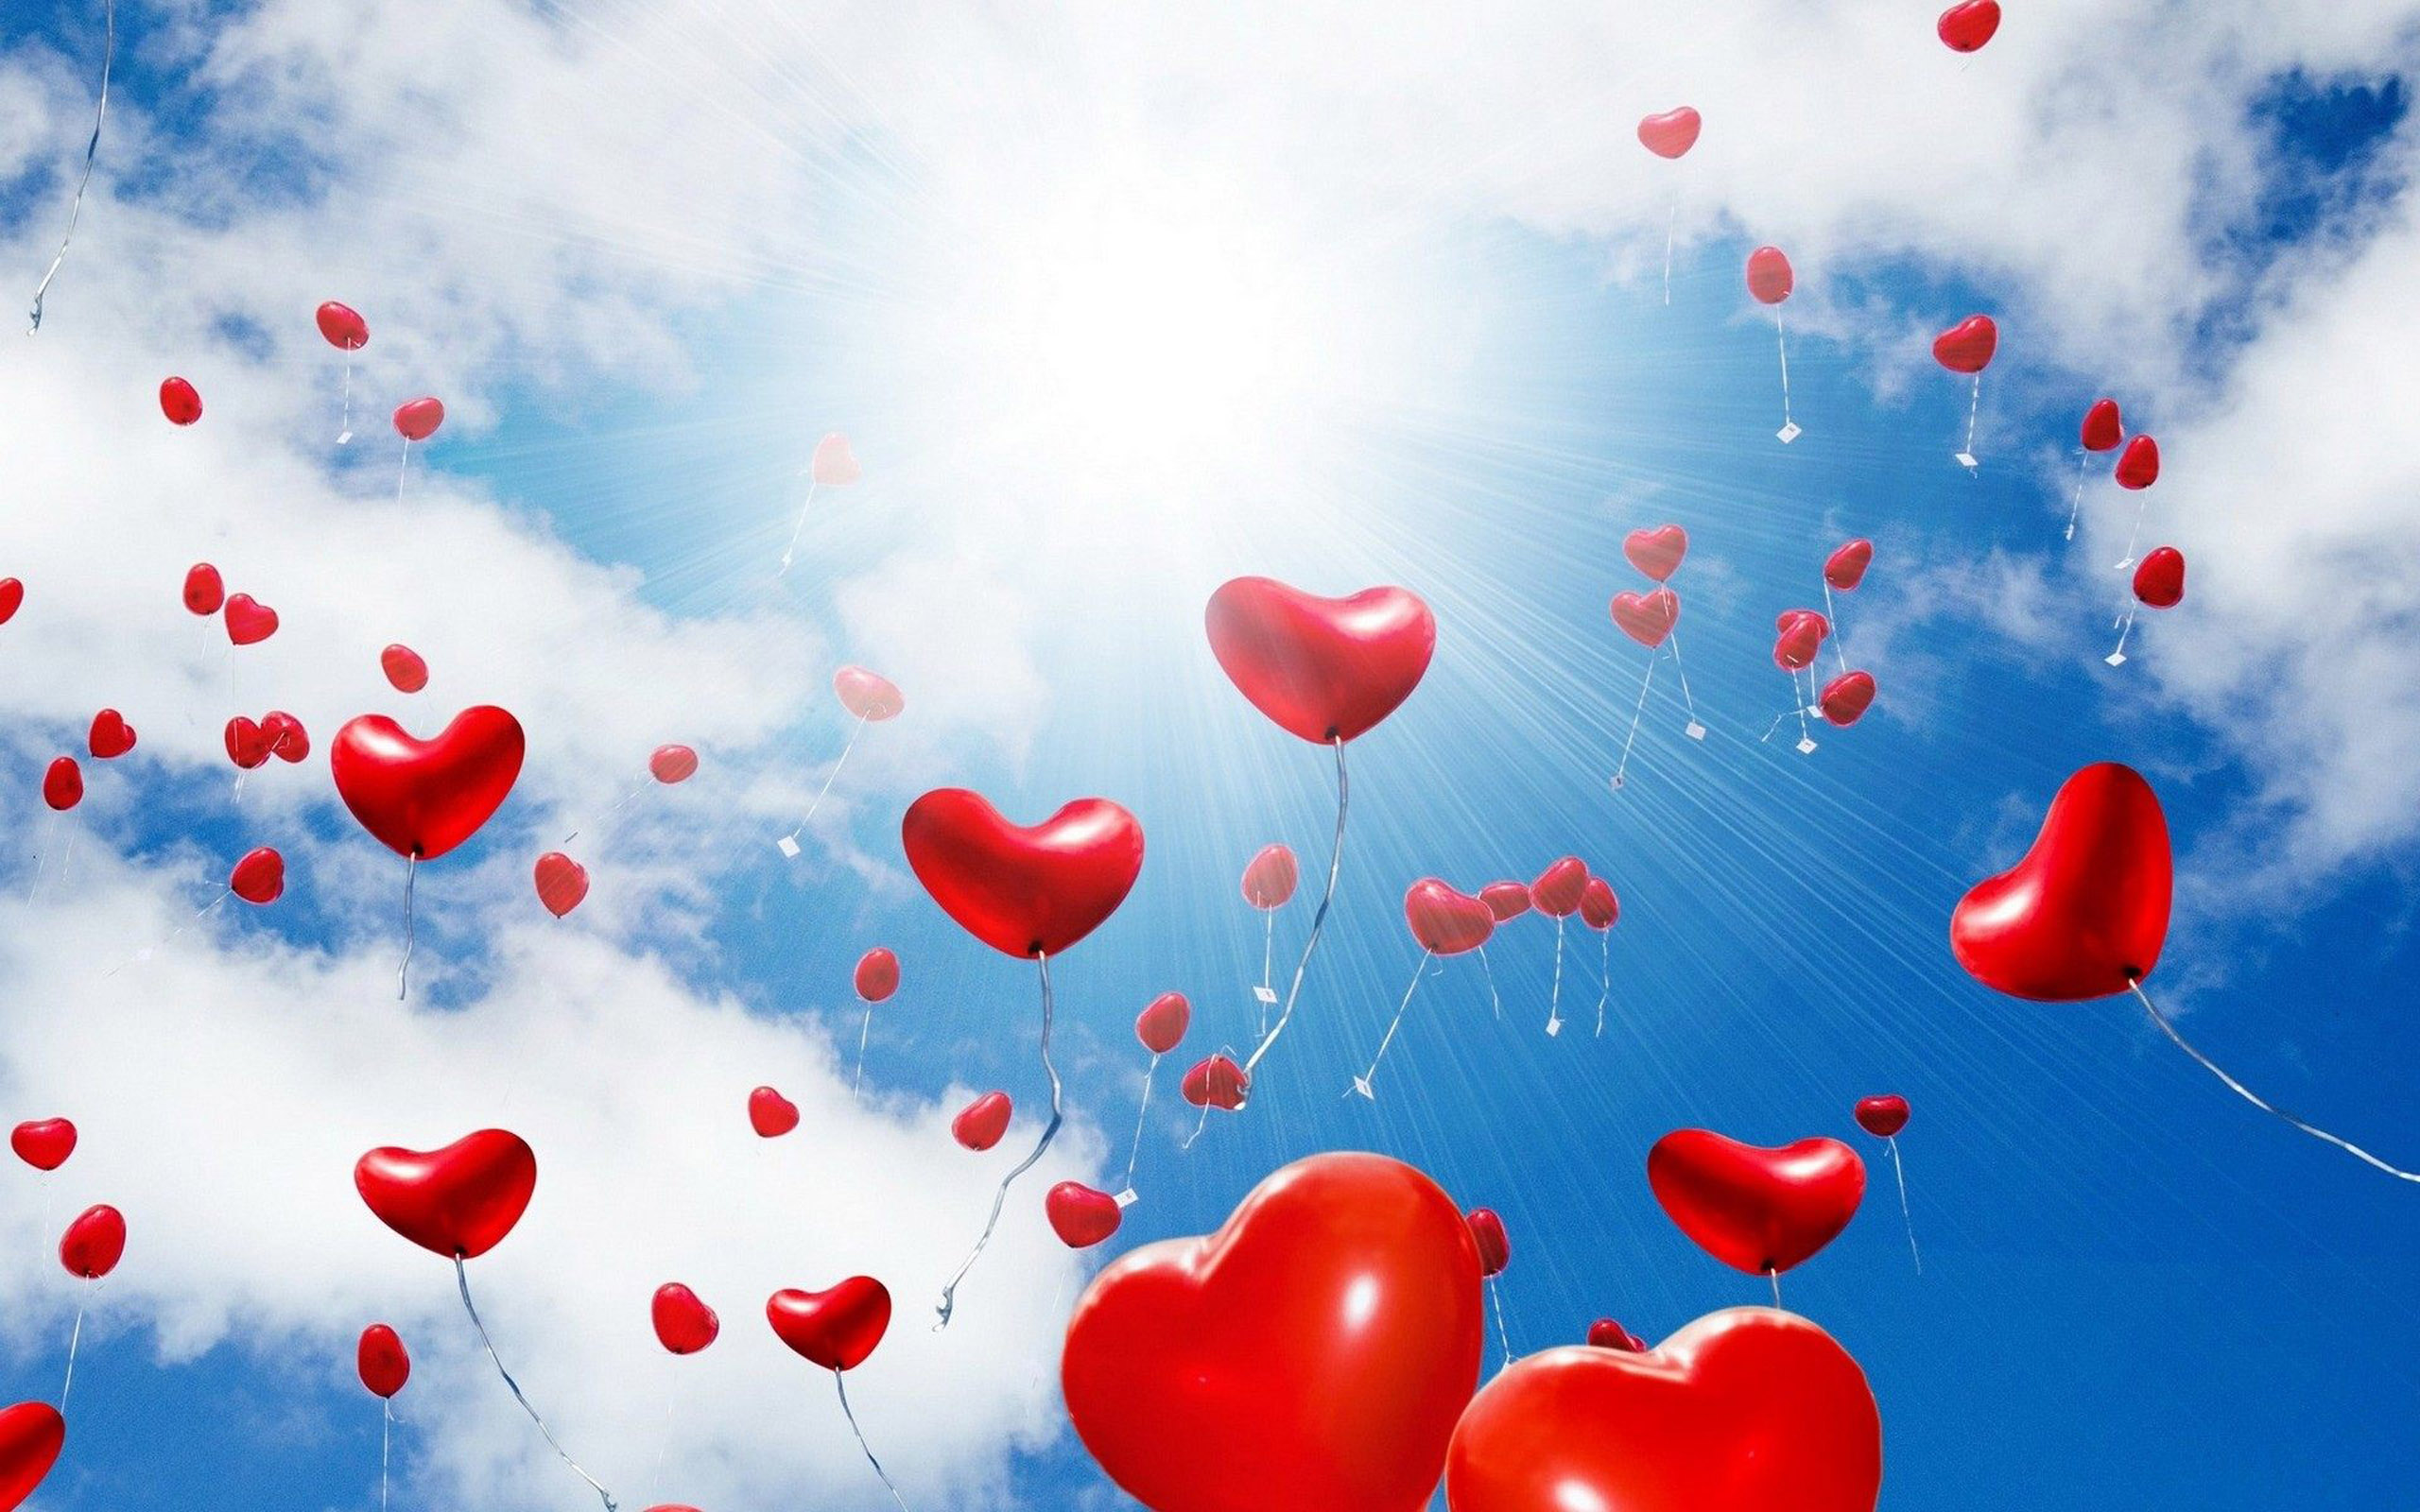 Red Balloons In The Shape Of A Heart Sunlight Blue Sky